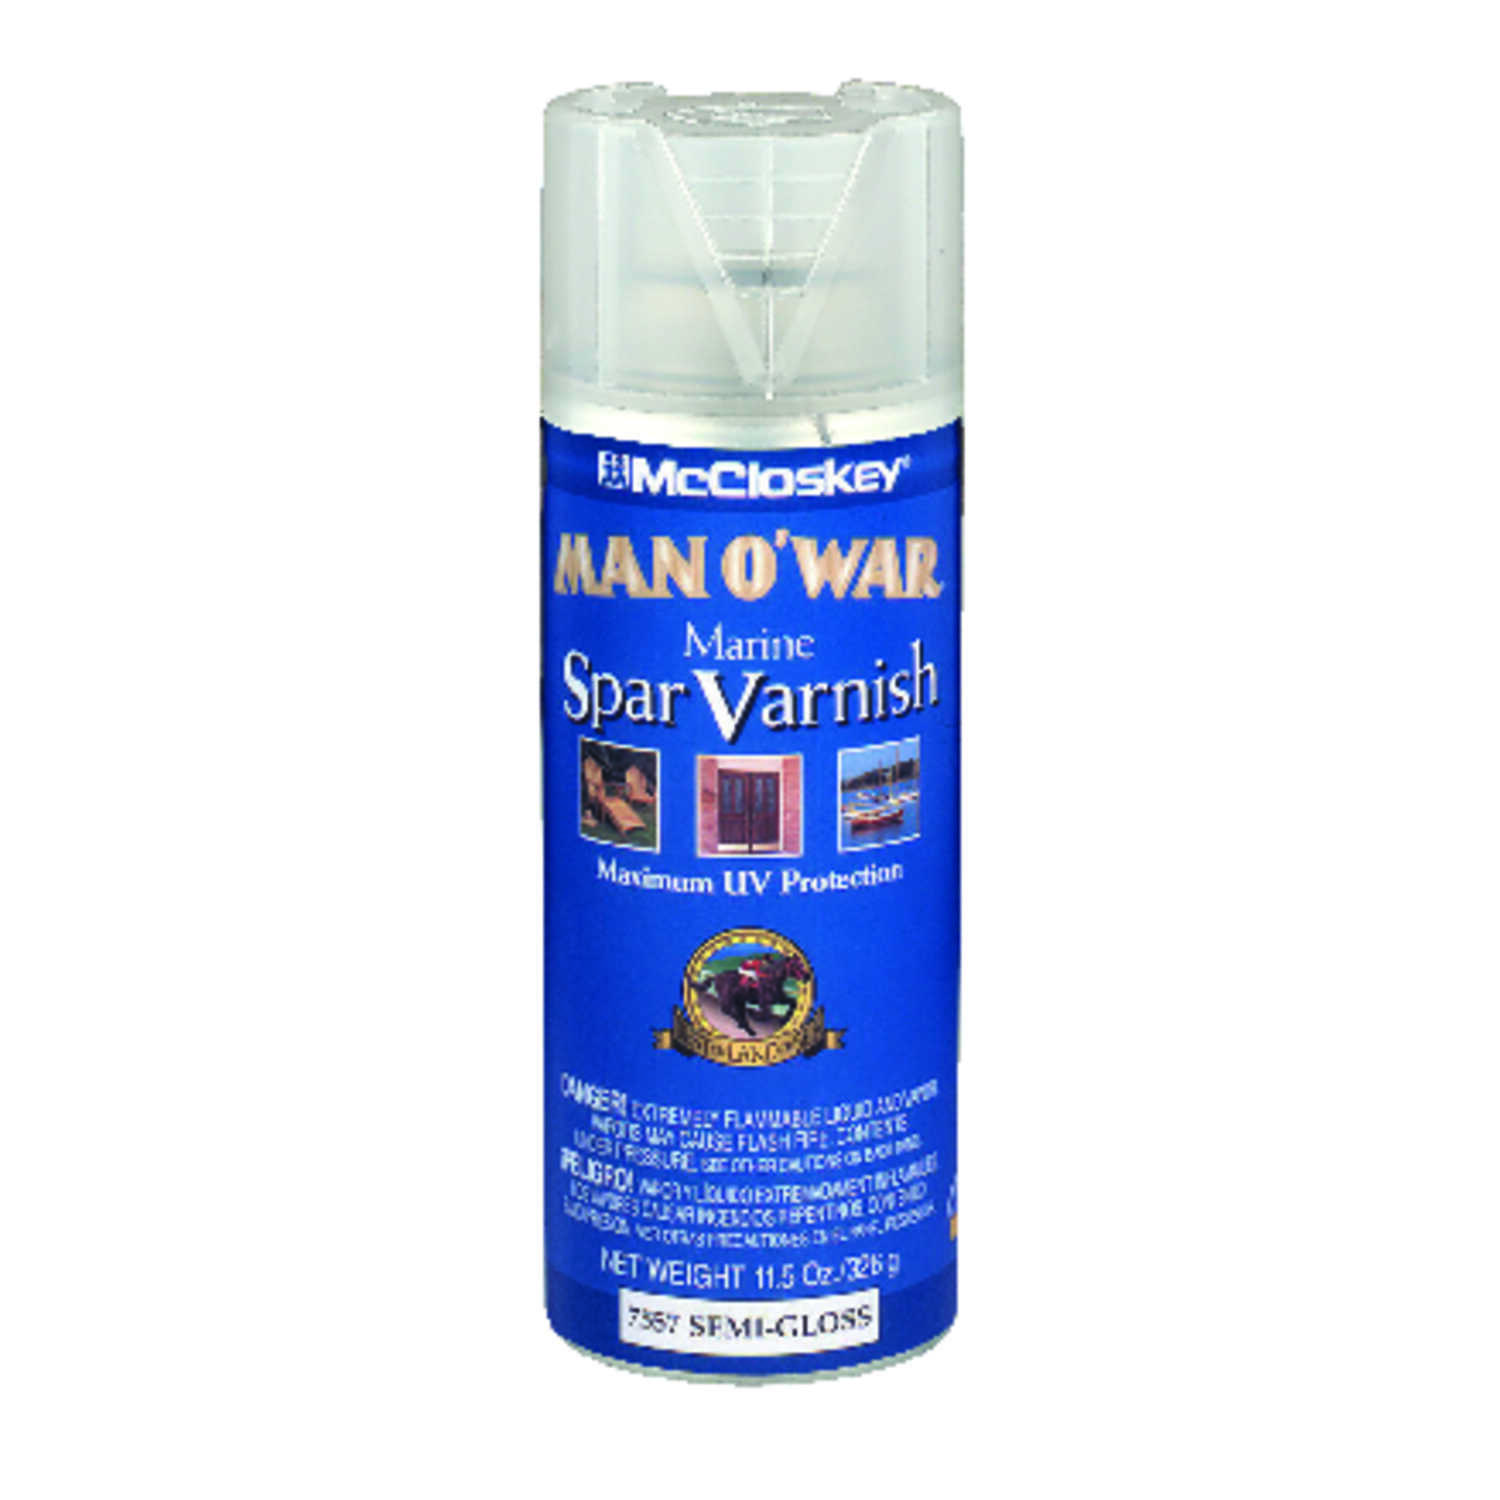 Man O' War McCloskey Semi-Gloss Clear Marine Spar Varnish